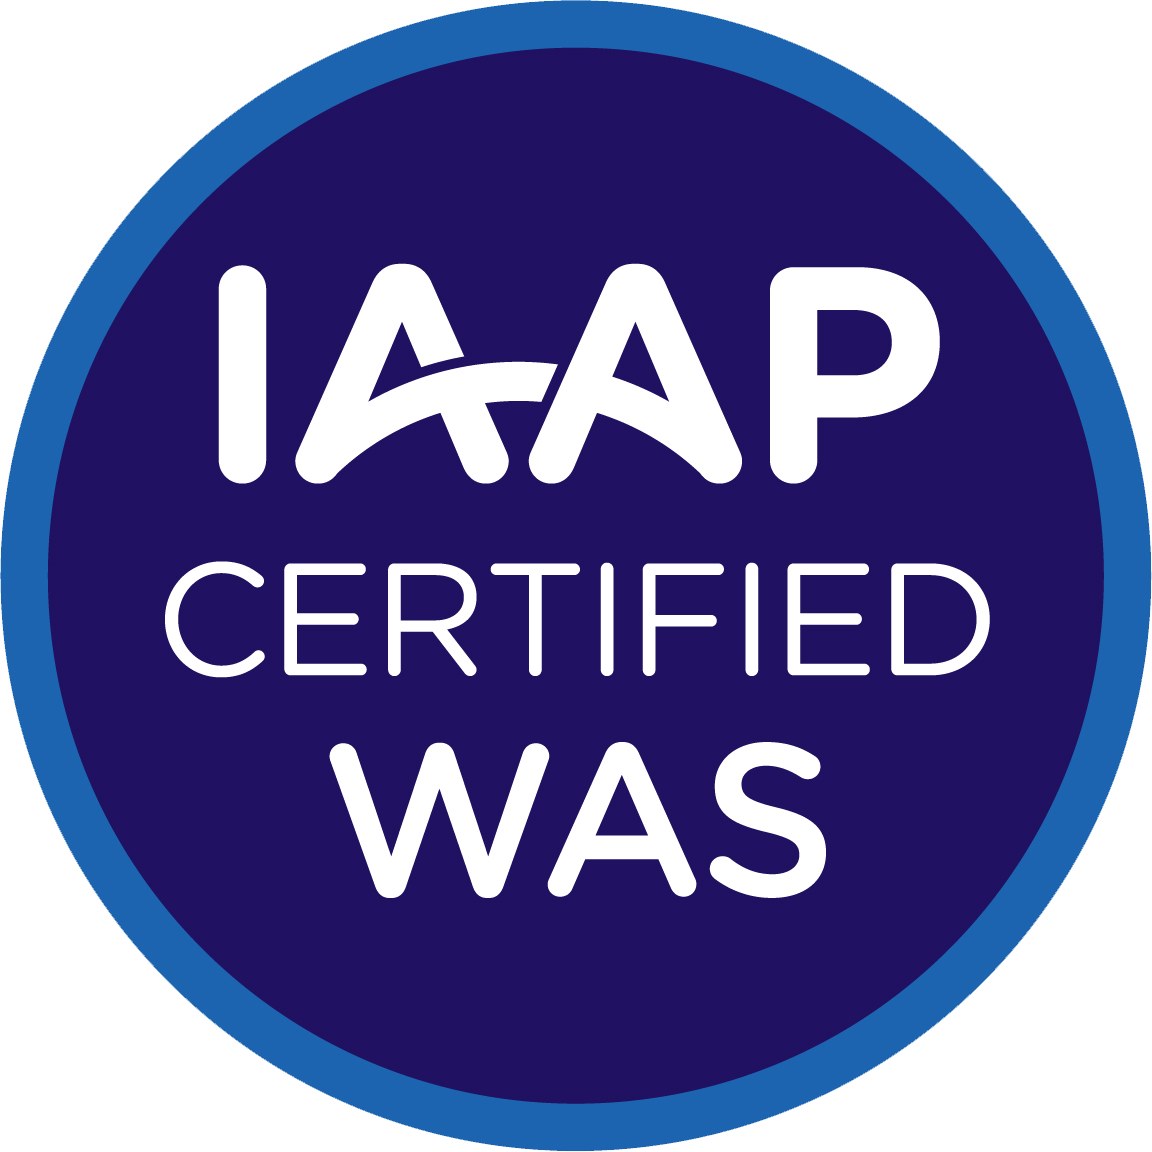 Web accessibility specialist certified credential